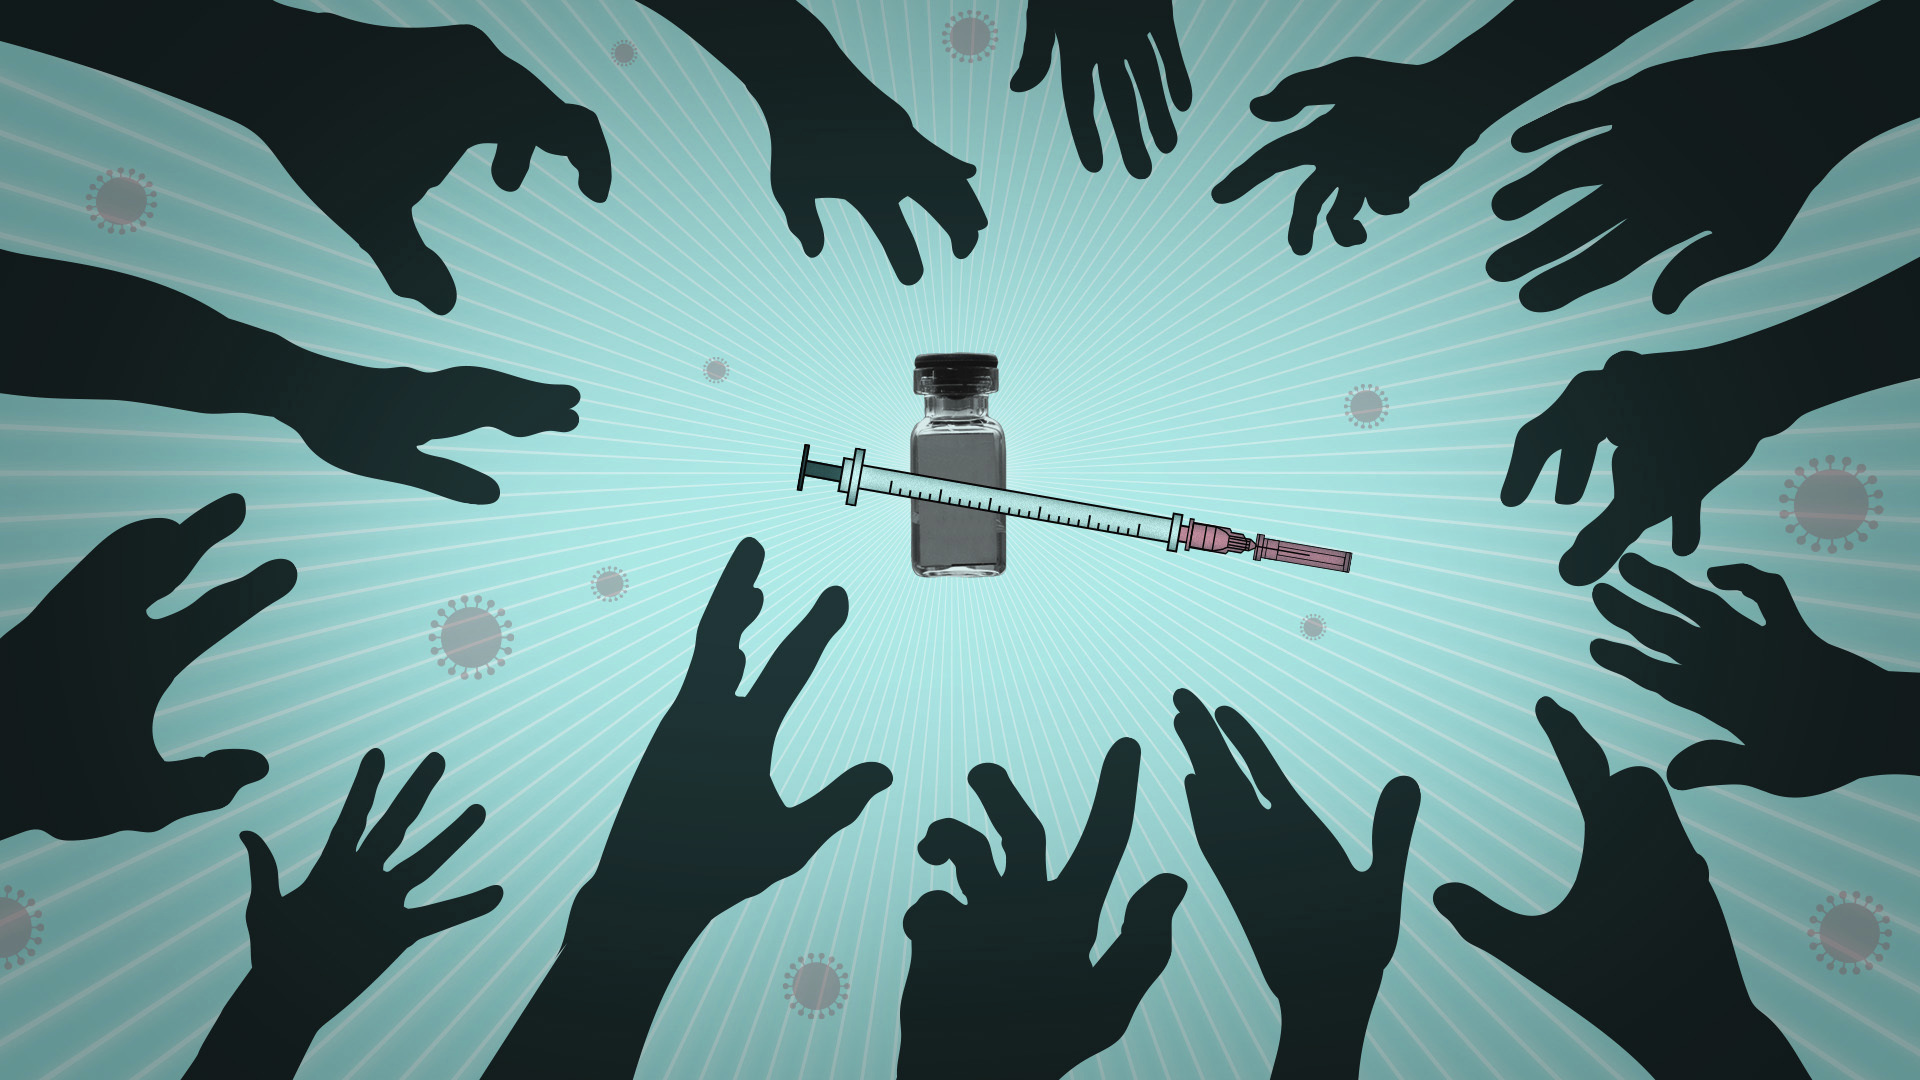 VIRUS OUTBREAK VIRAL QUESTIONS VACCINE DISTRIBUTION